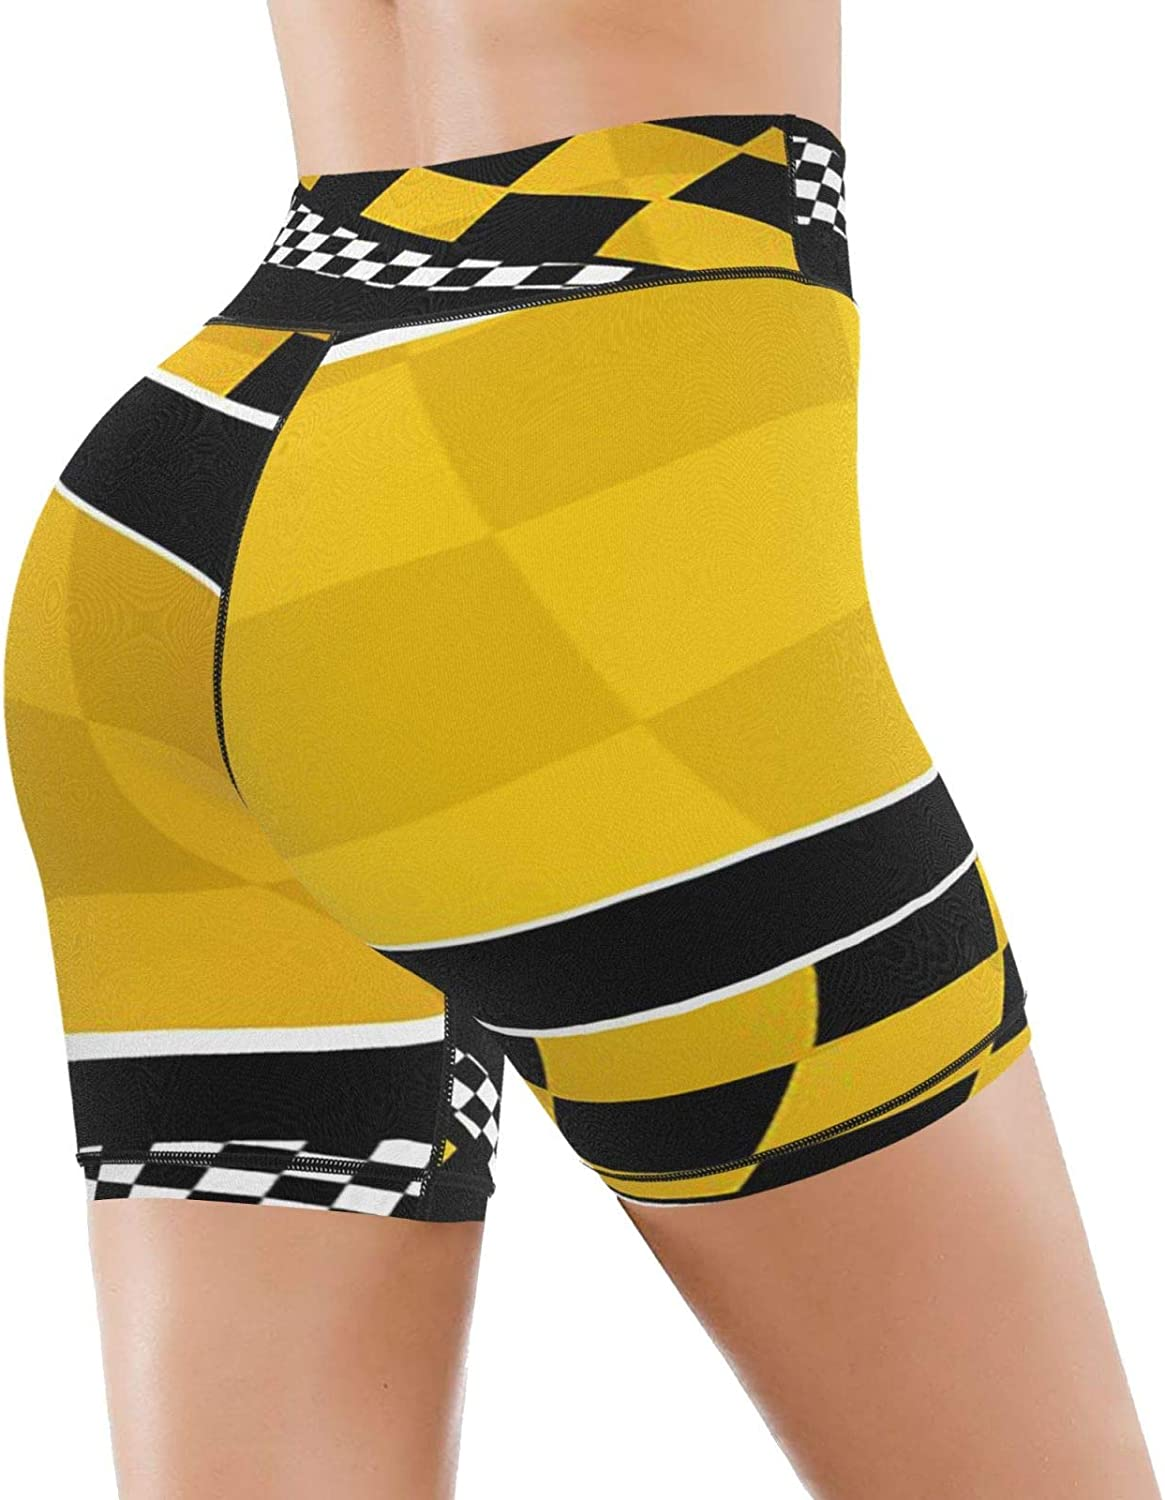 PEKIVIDE 2021 Black Yellow Challenge the lowest price of Japan ☆ 25% OFF Checkered High B Indiana Waisted Race